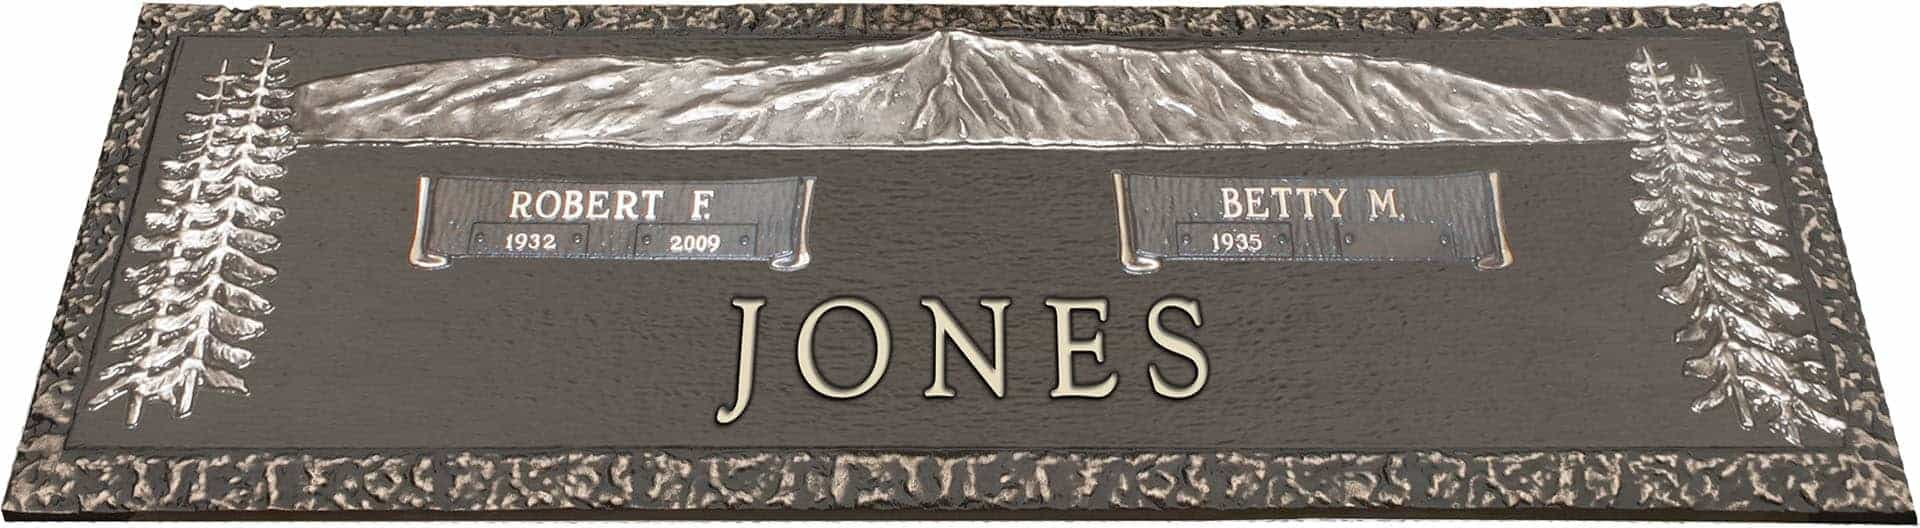 bronze headstone 36x13 companion without base honor life Monument Designs Clip Art Clip Art for Headstones with Leaves